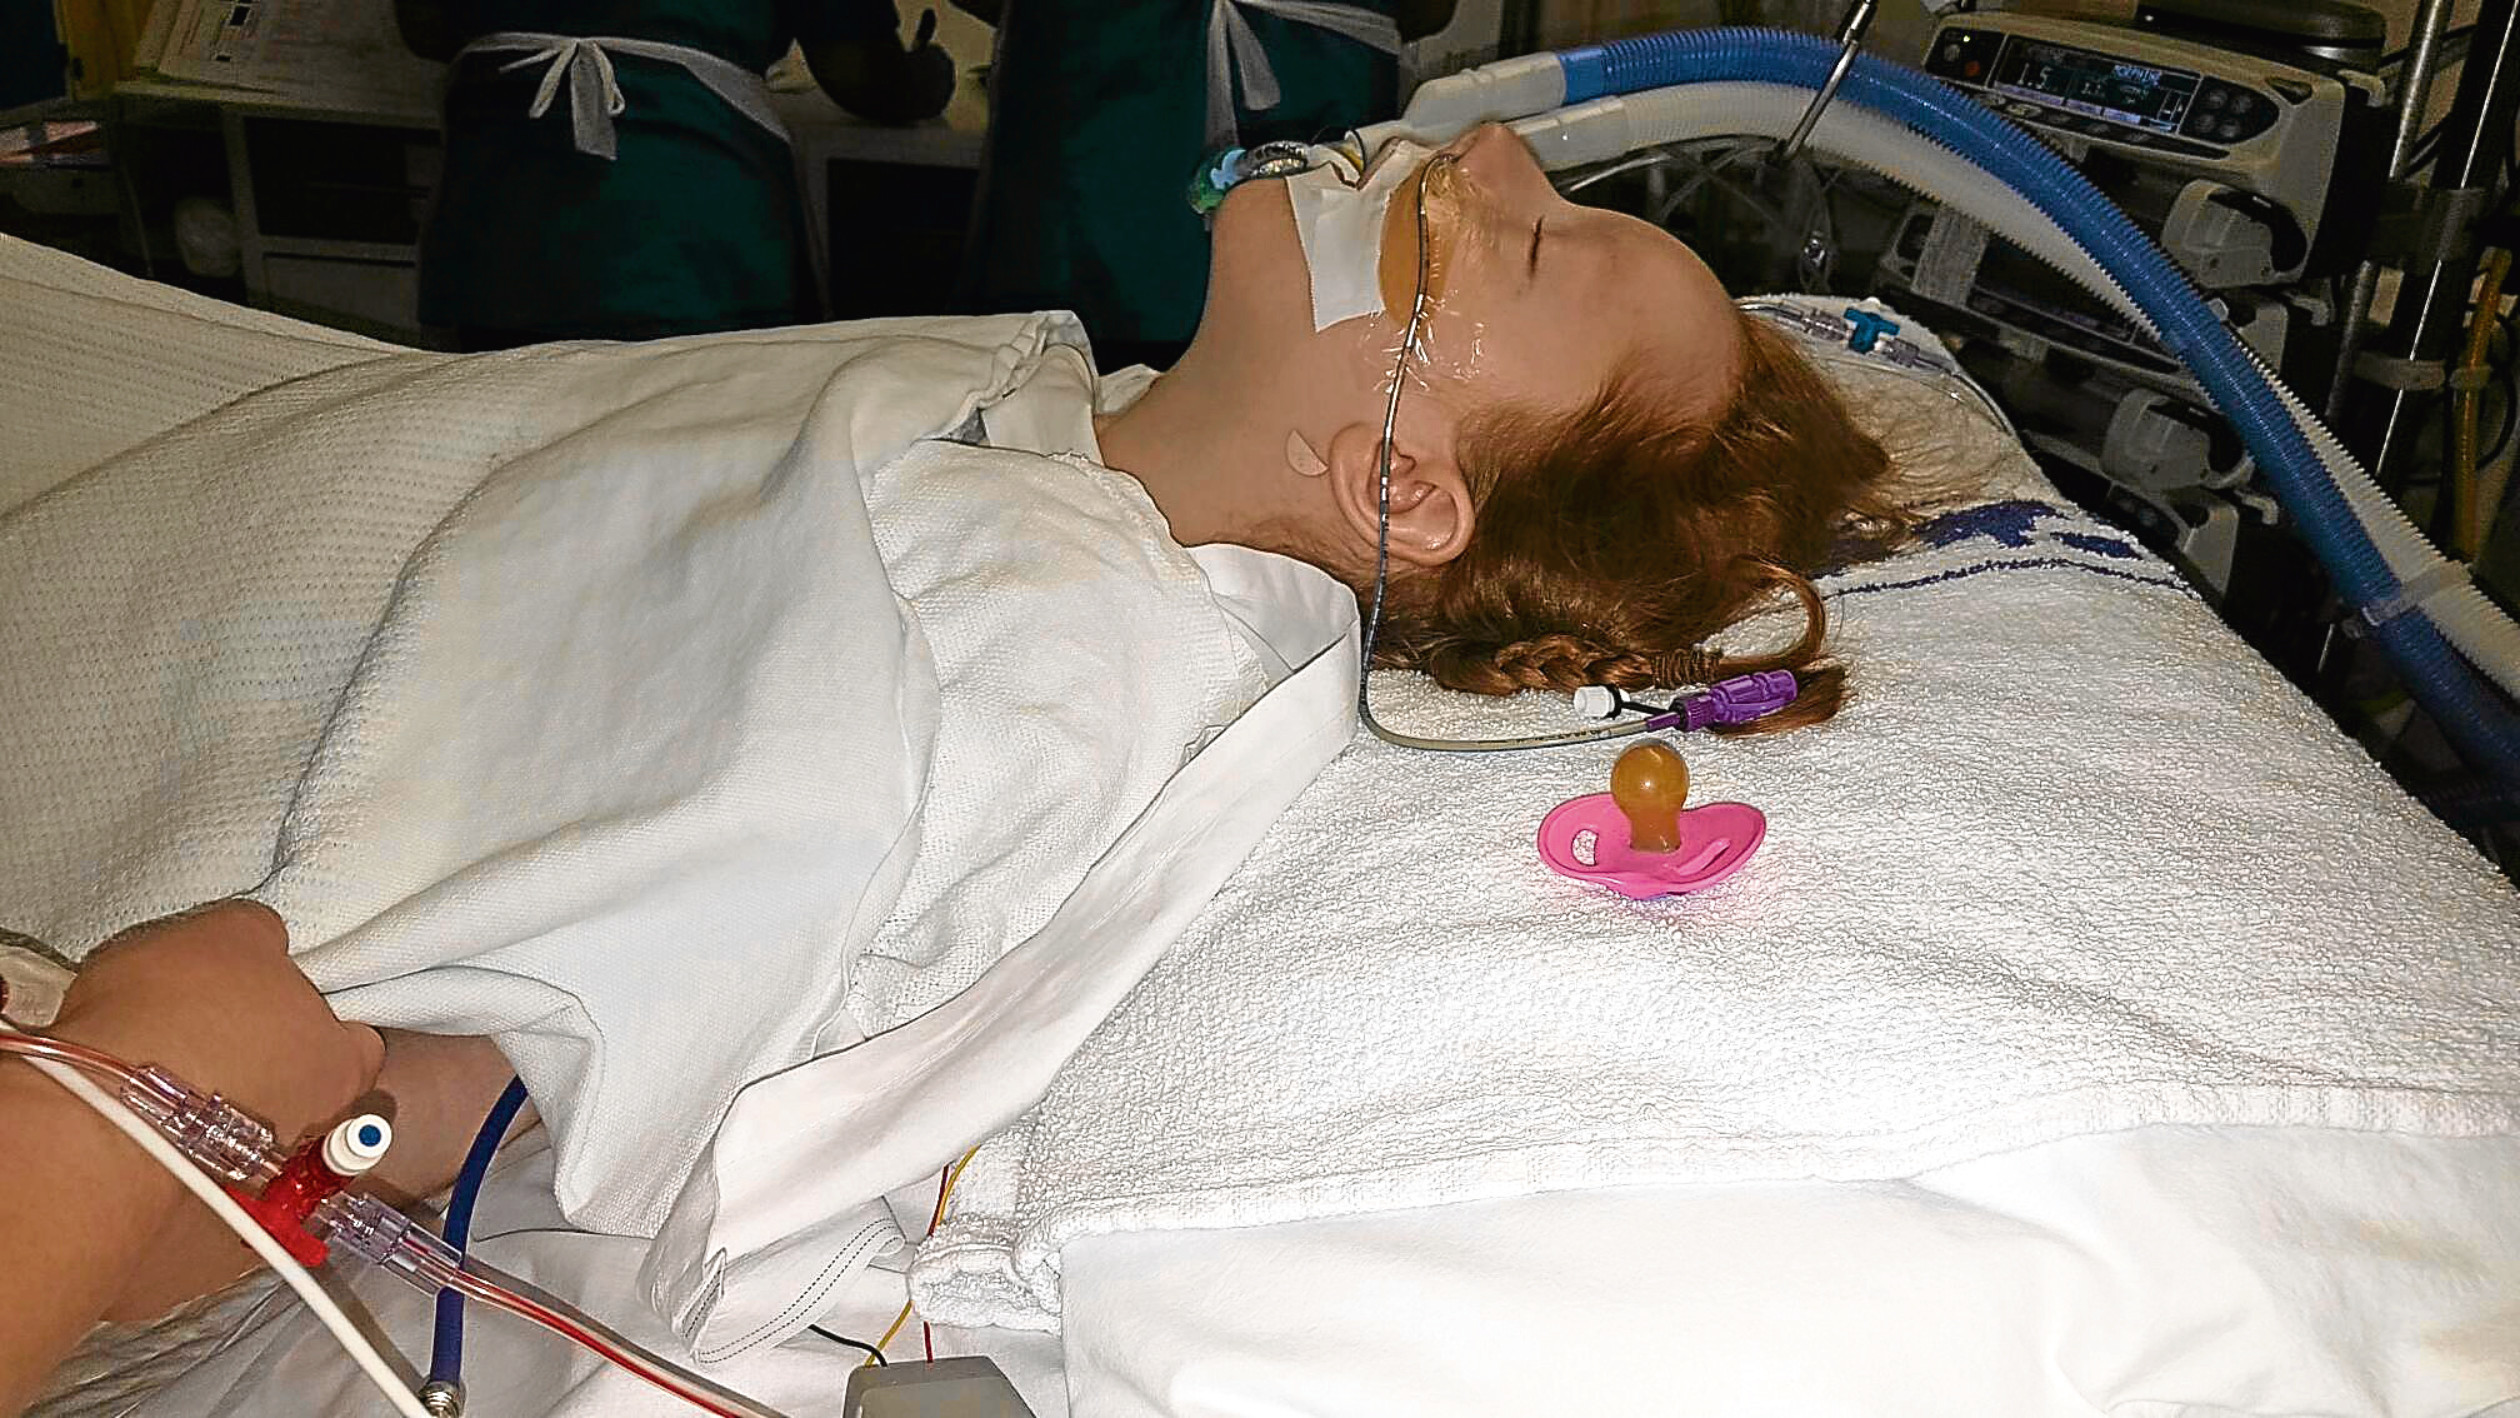 Kaela in the Royal Hospital for Sick Children in Edinburgh. The youngster is recovering after undergoing an operation.